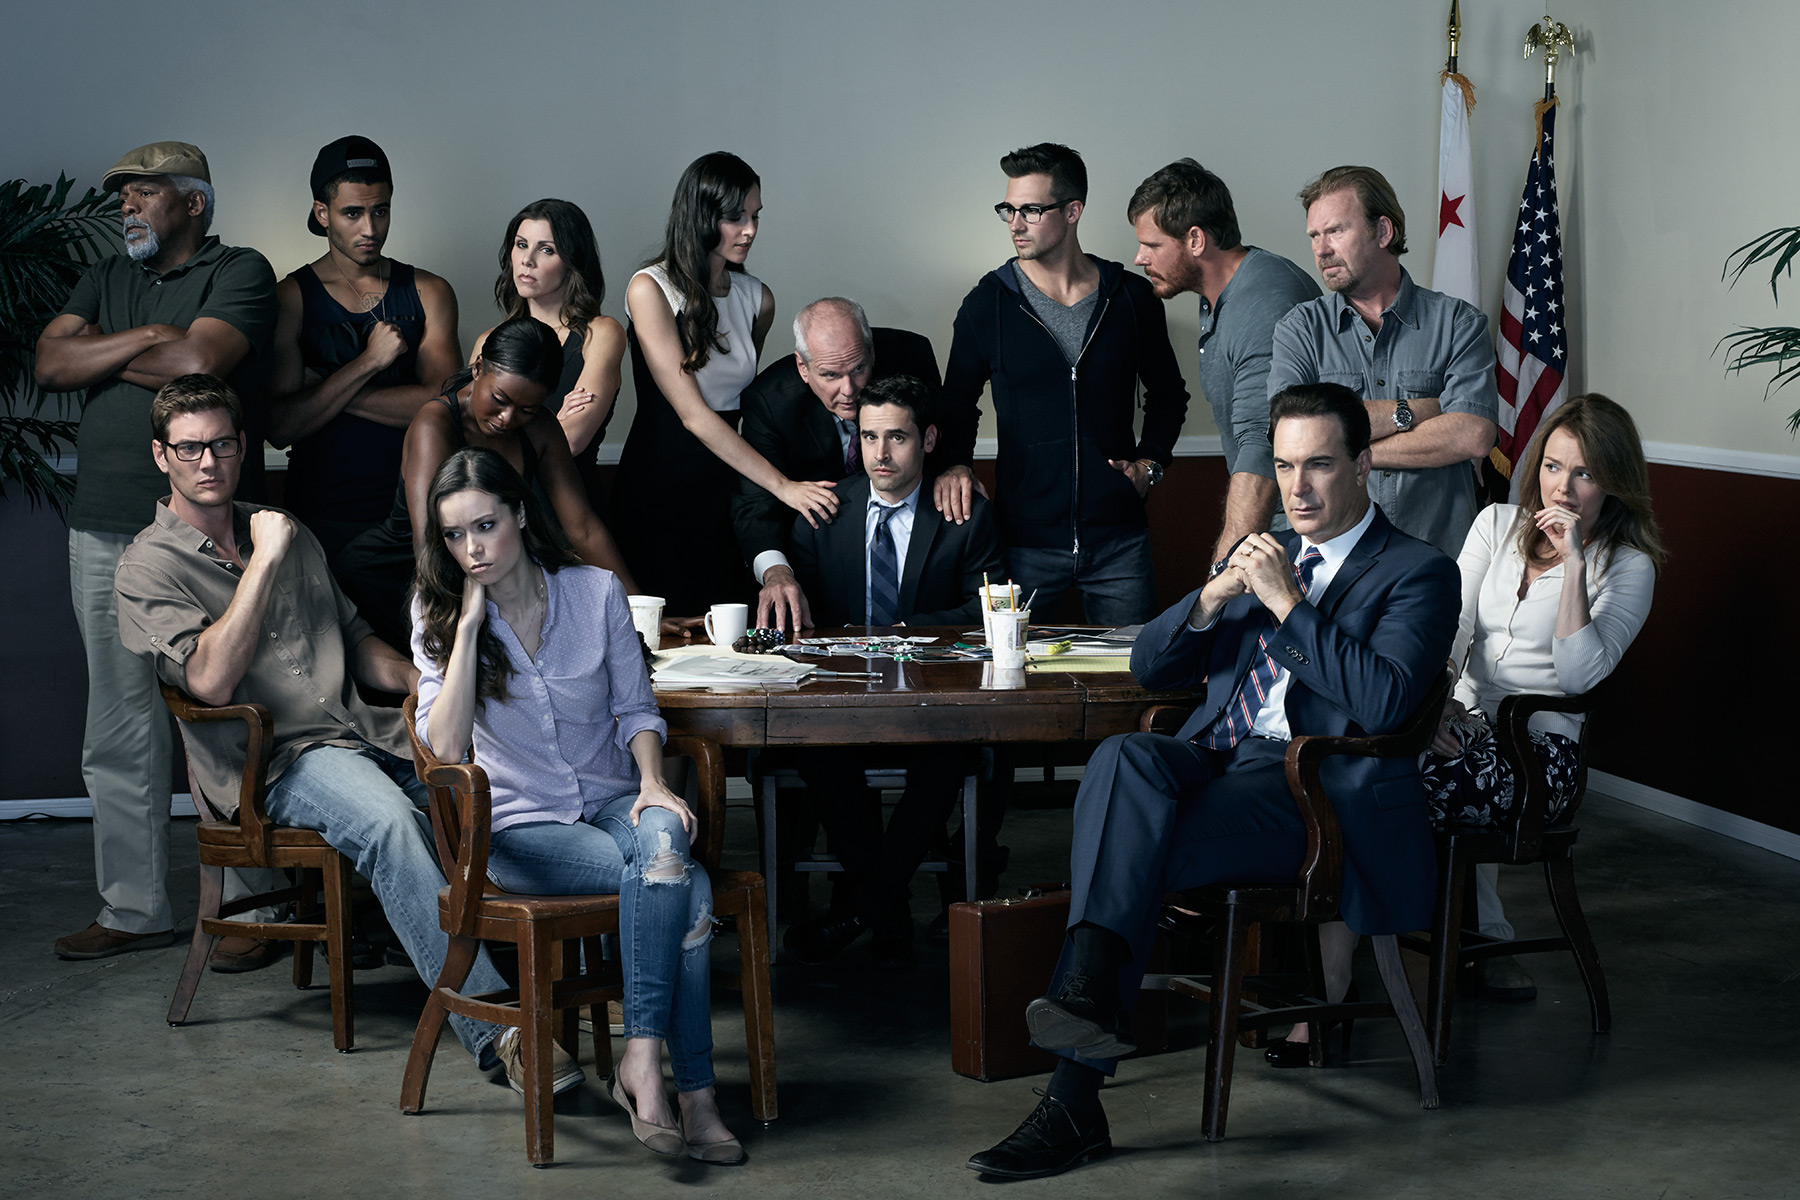 Cast of the tv series, Sequestered, photographed by Scott Council